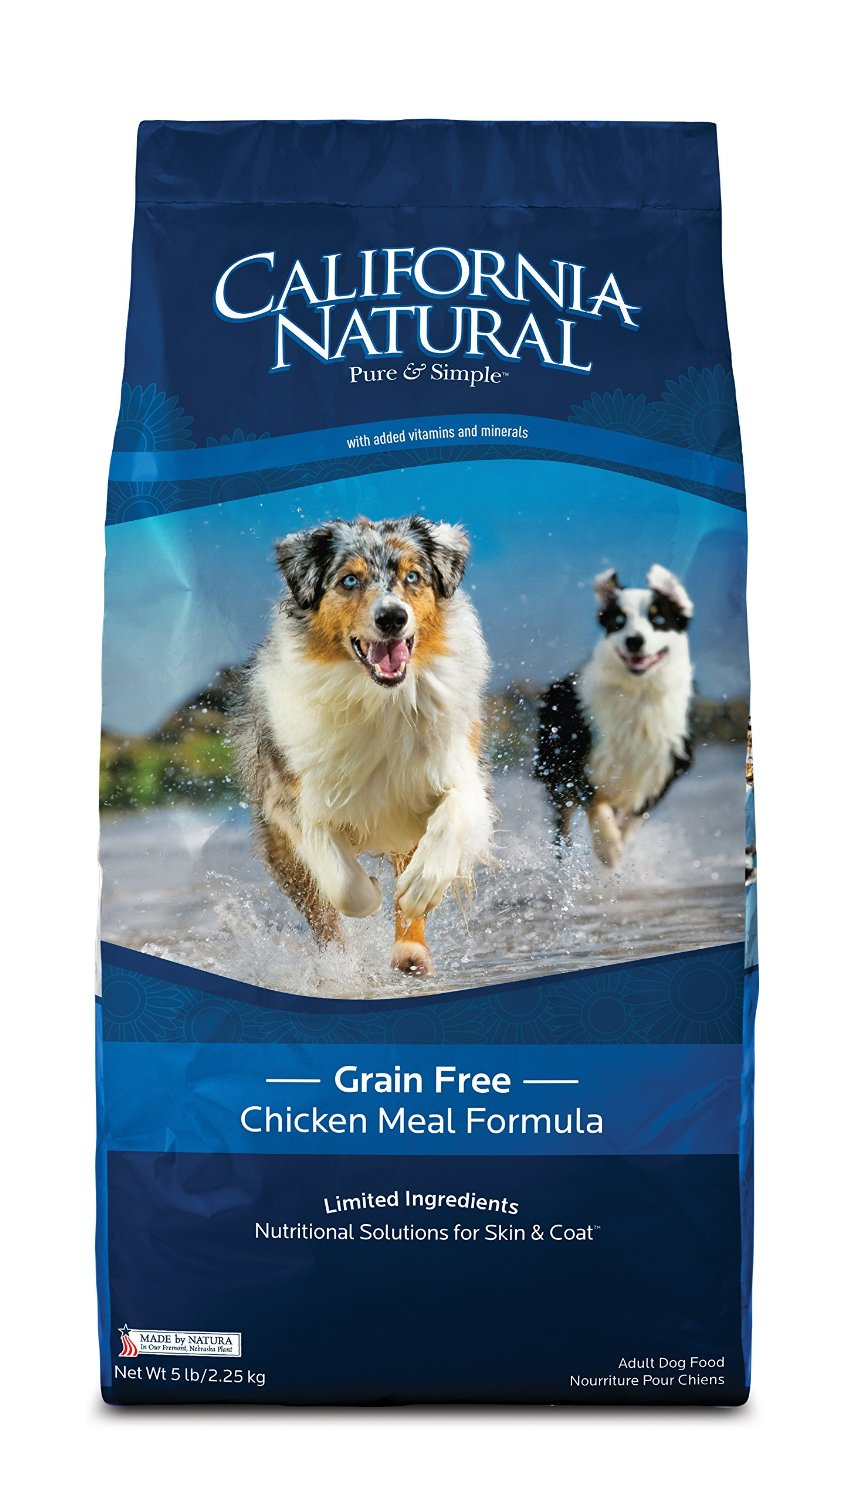 California Natural Grain Free Dog Food